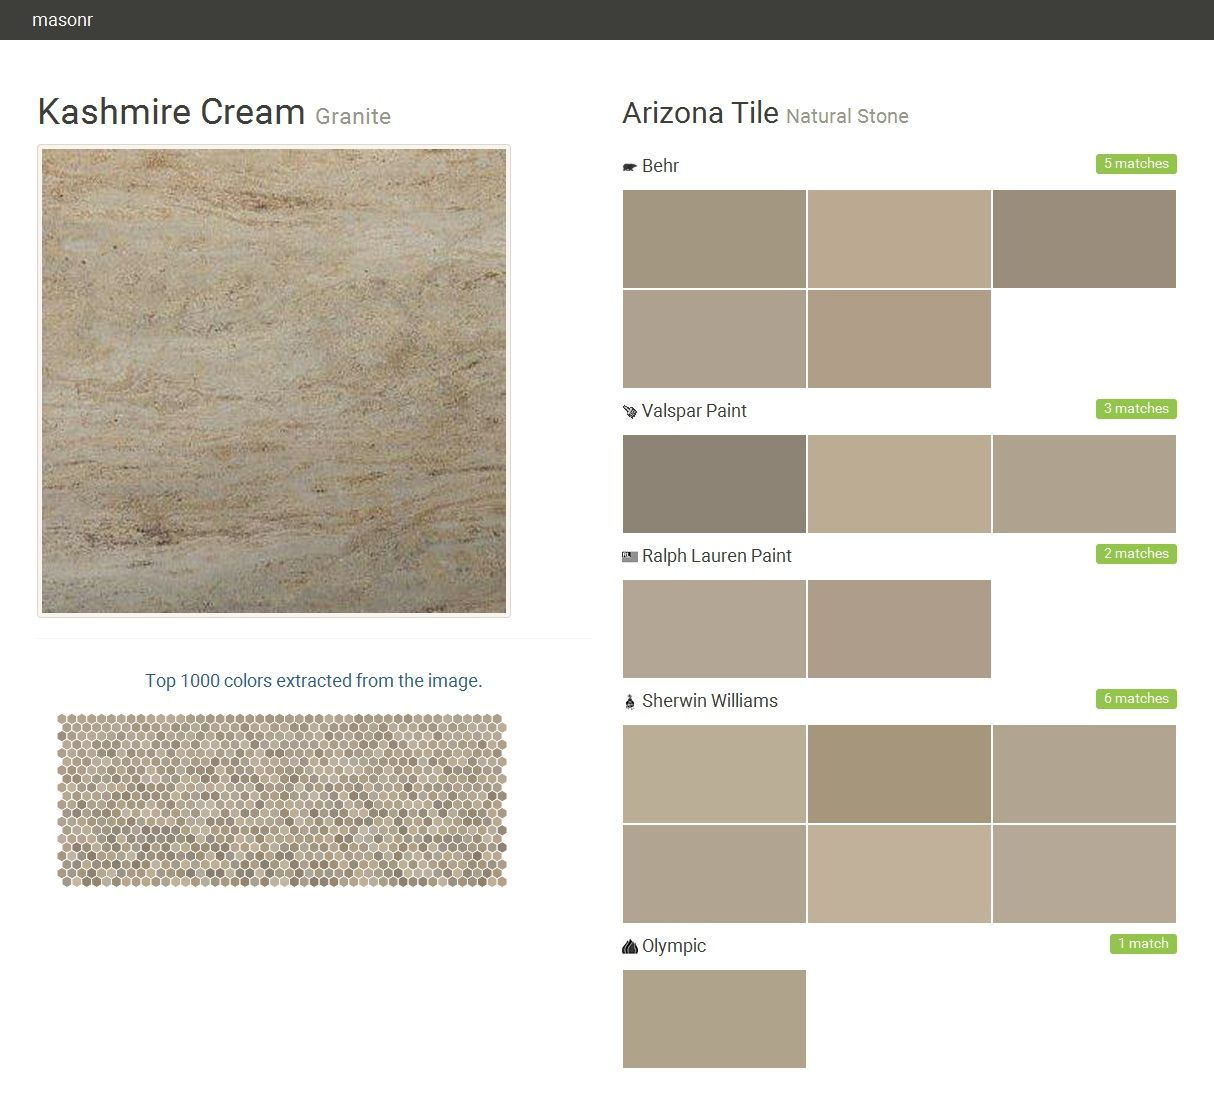 Kashmire Cream. Granite. Natural Stone. Arizona Tile. Behr. Valspar Paint.